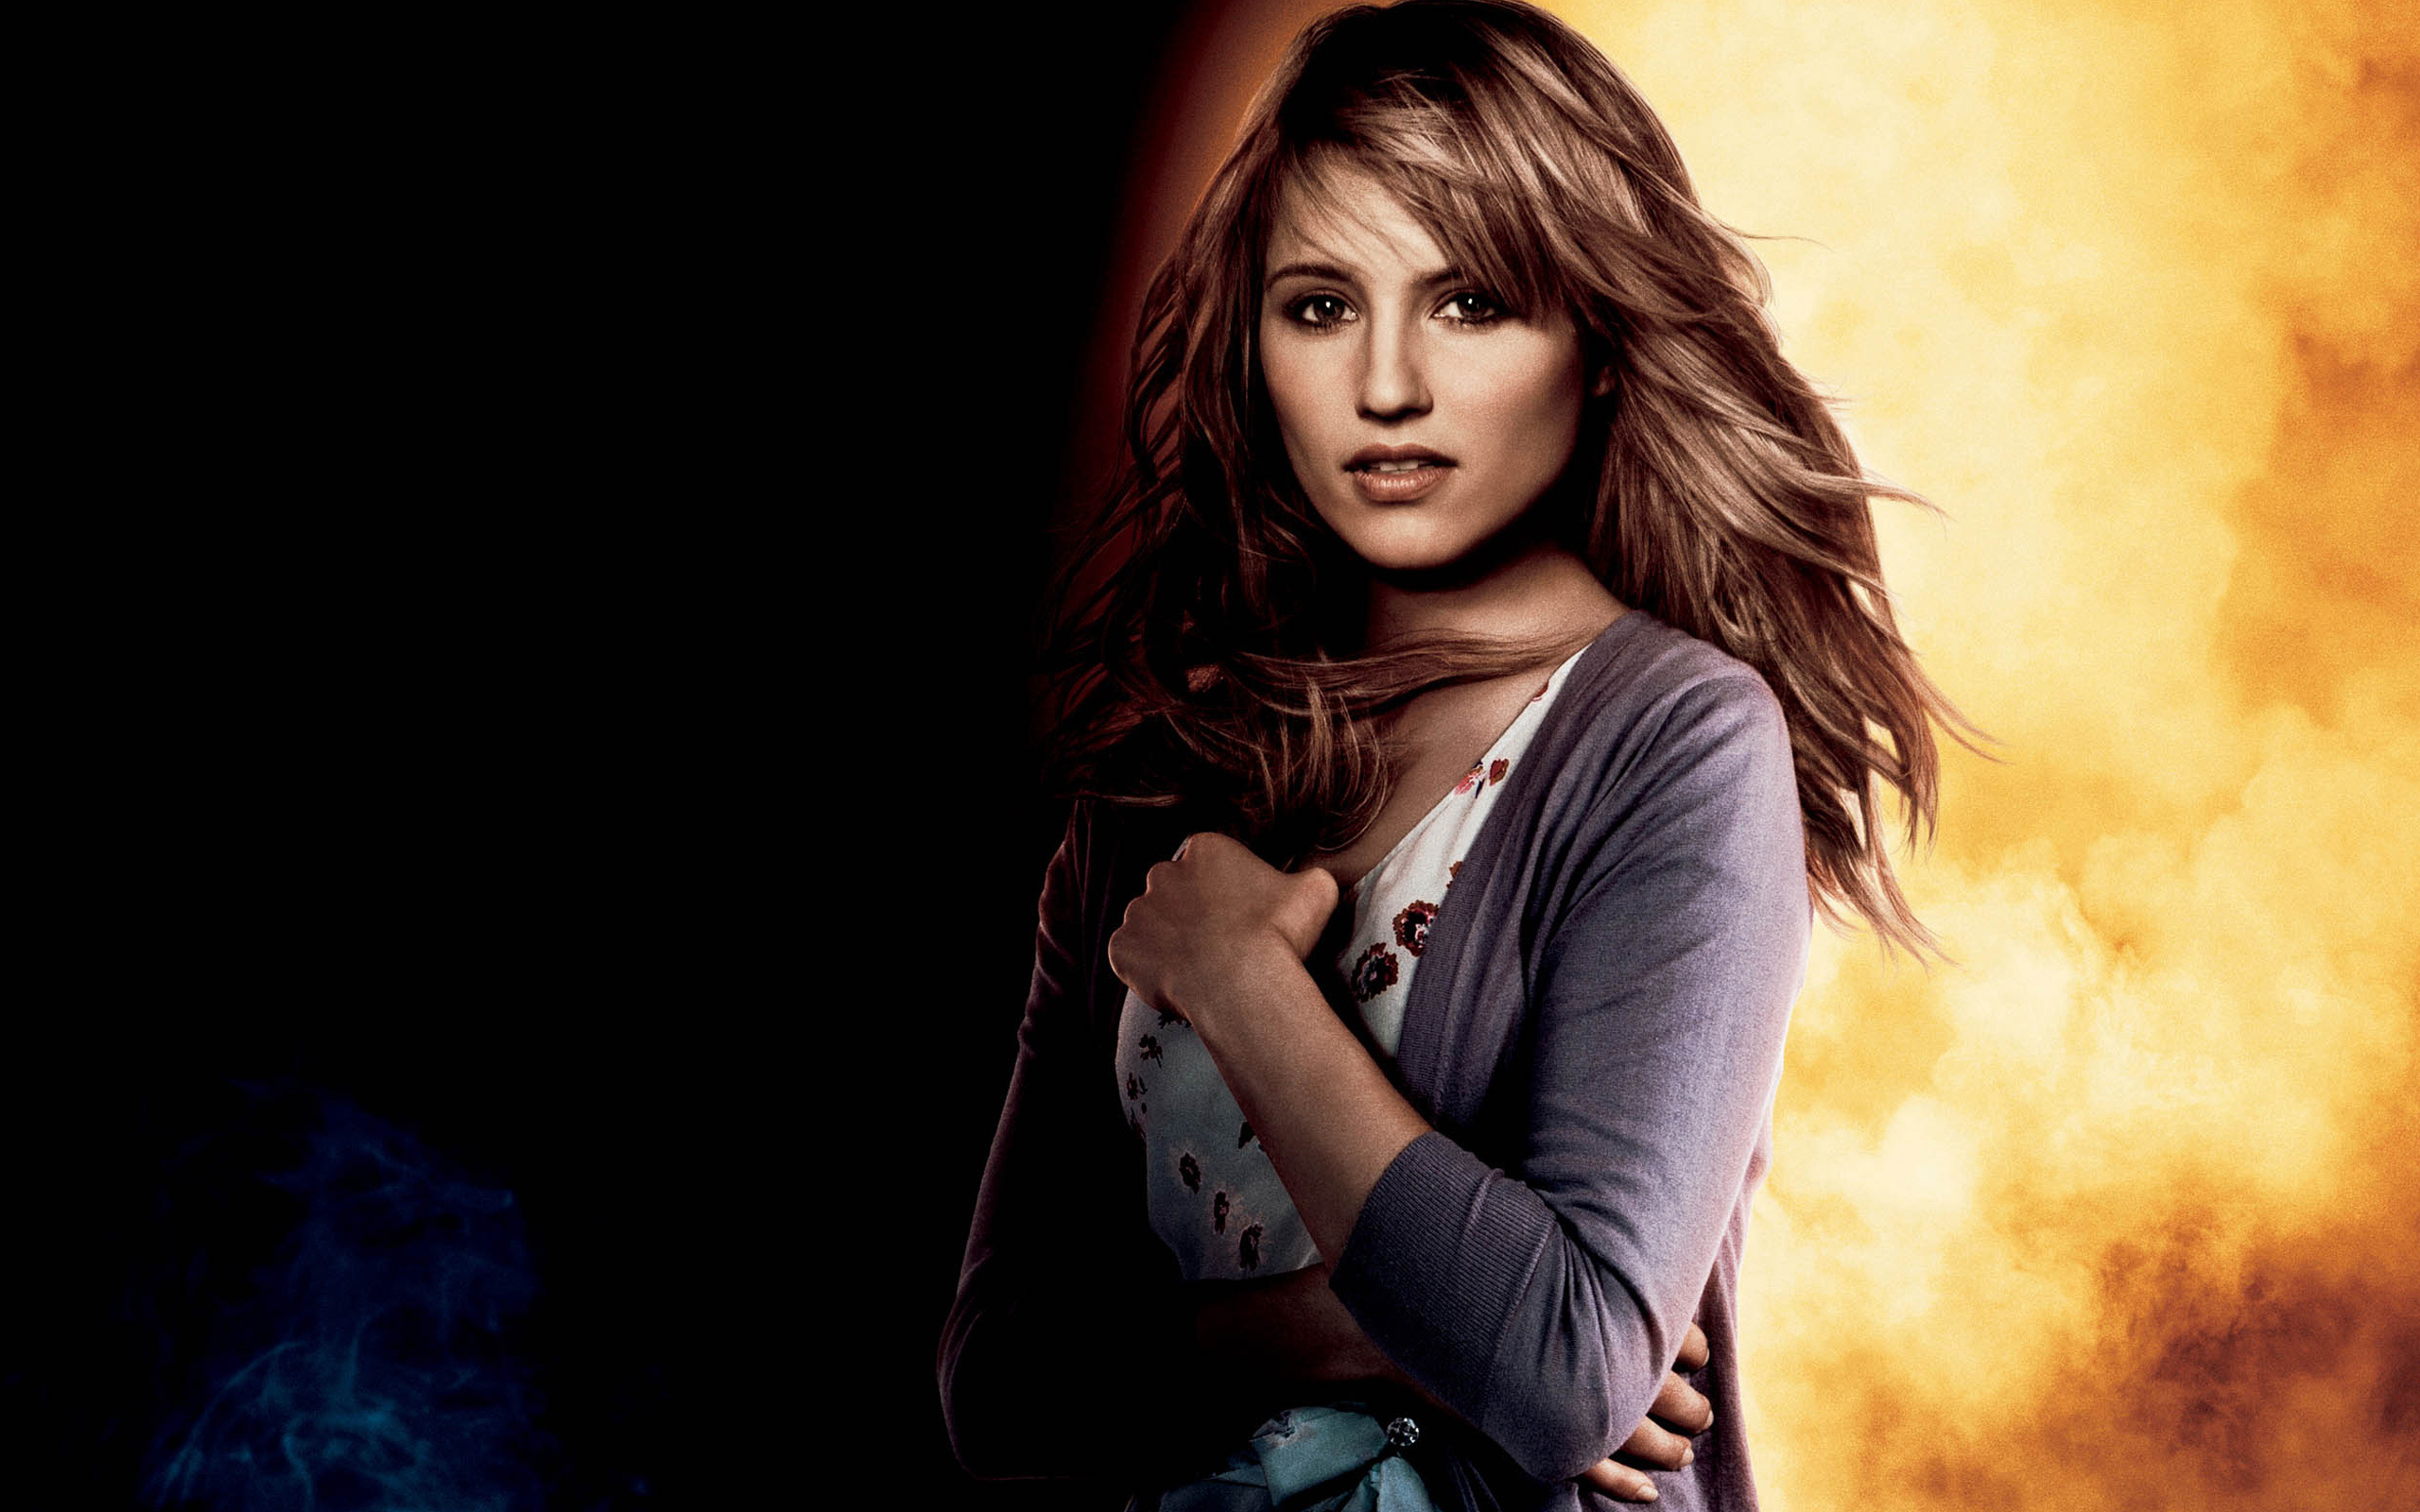 2560x1600 - Dianna Agron Wallpapers 18